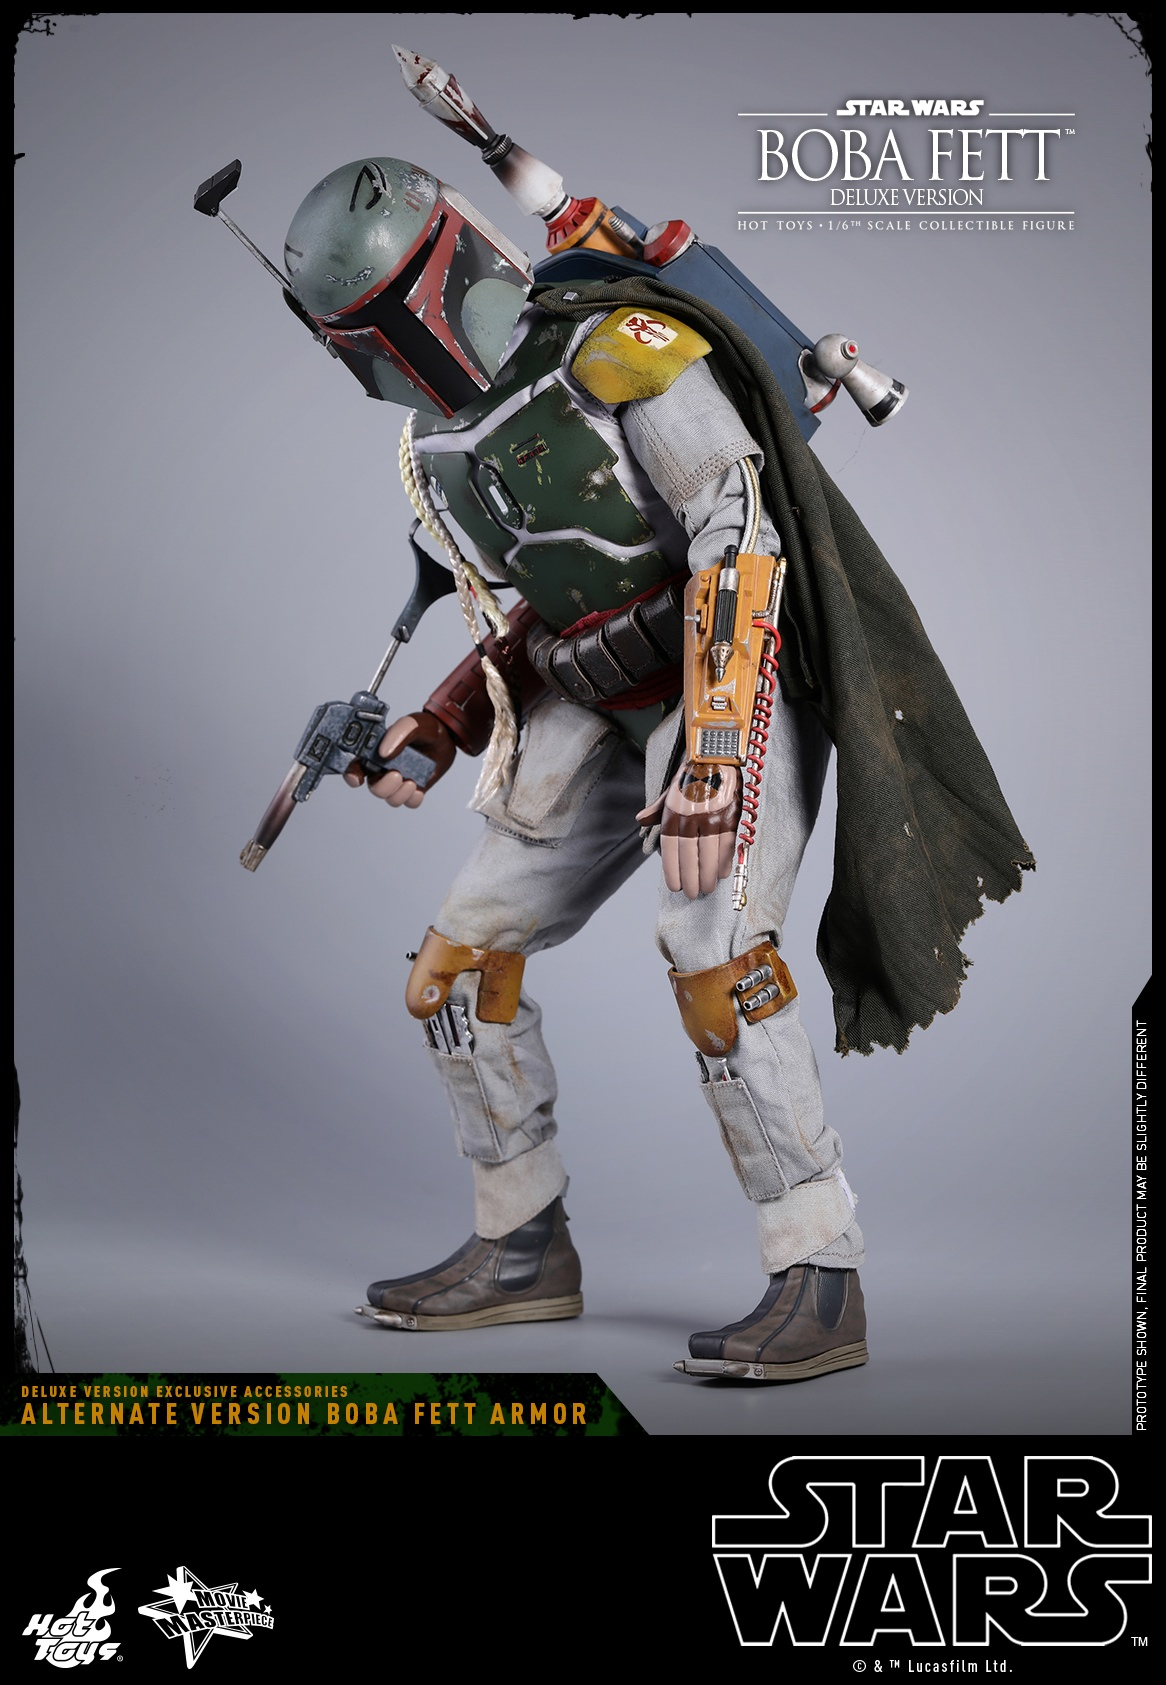 Hot Toys - Star Wars - Boba Fett collectible figure (Deluxe)_PR6.jpg